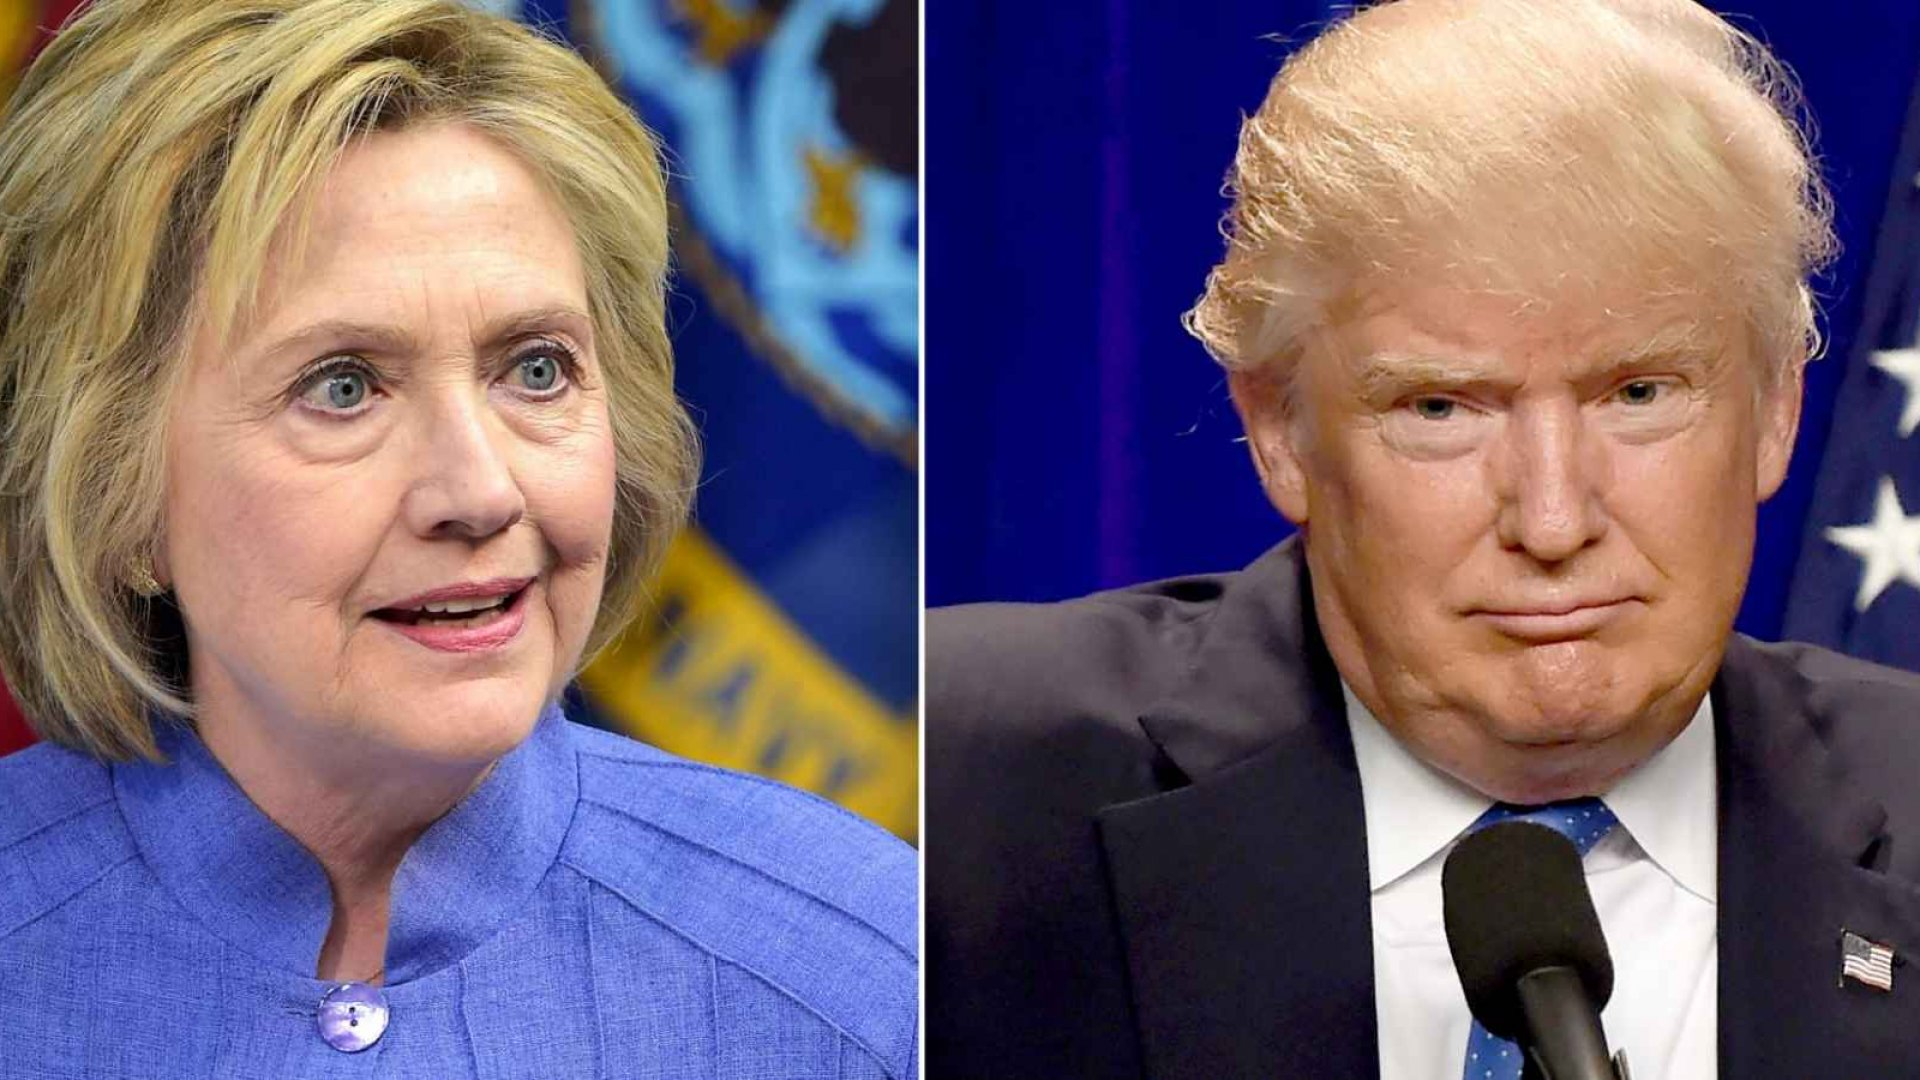 3 Essential Marketing Lessons from Trump v Clinton